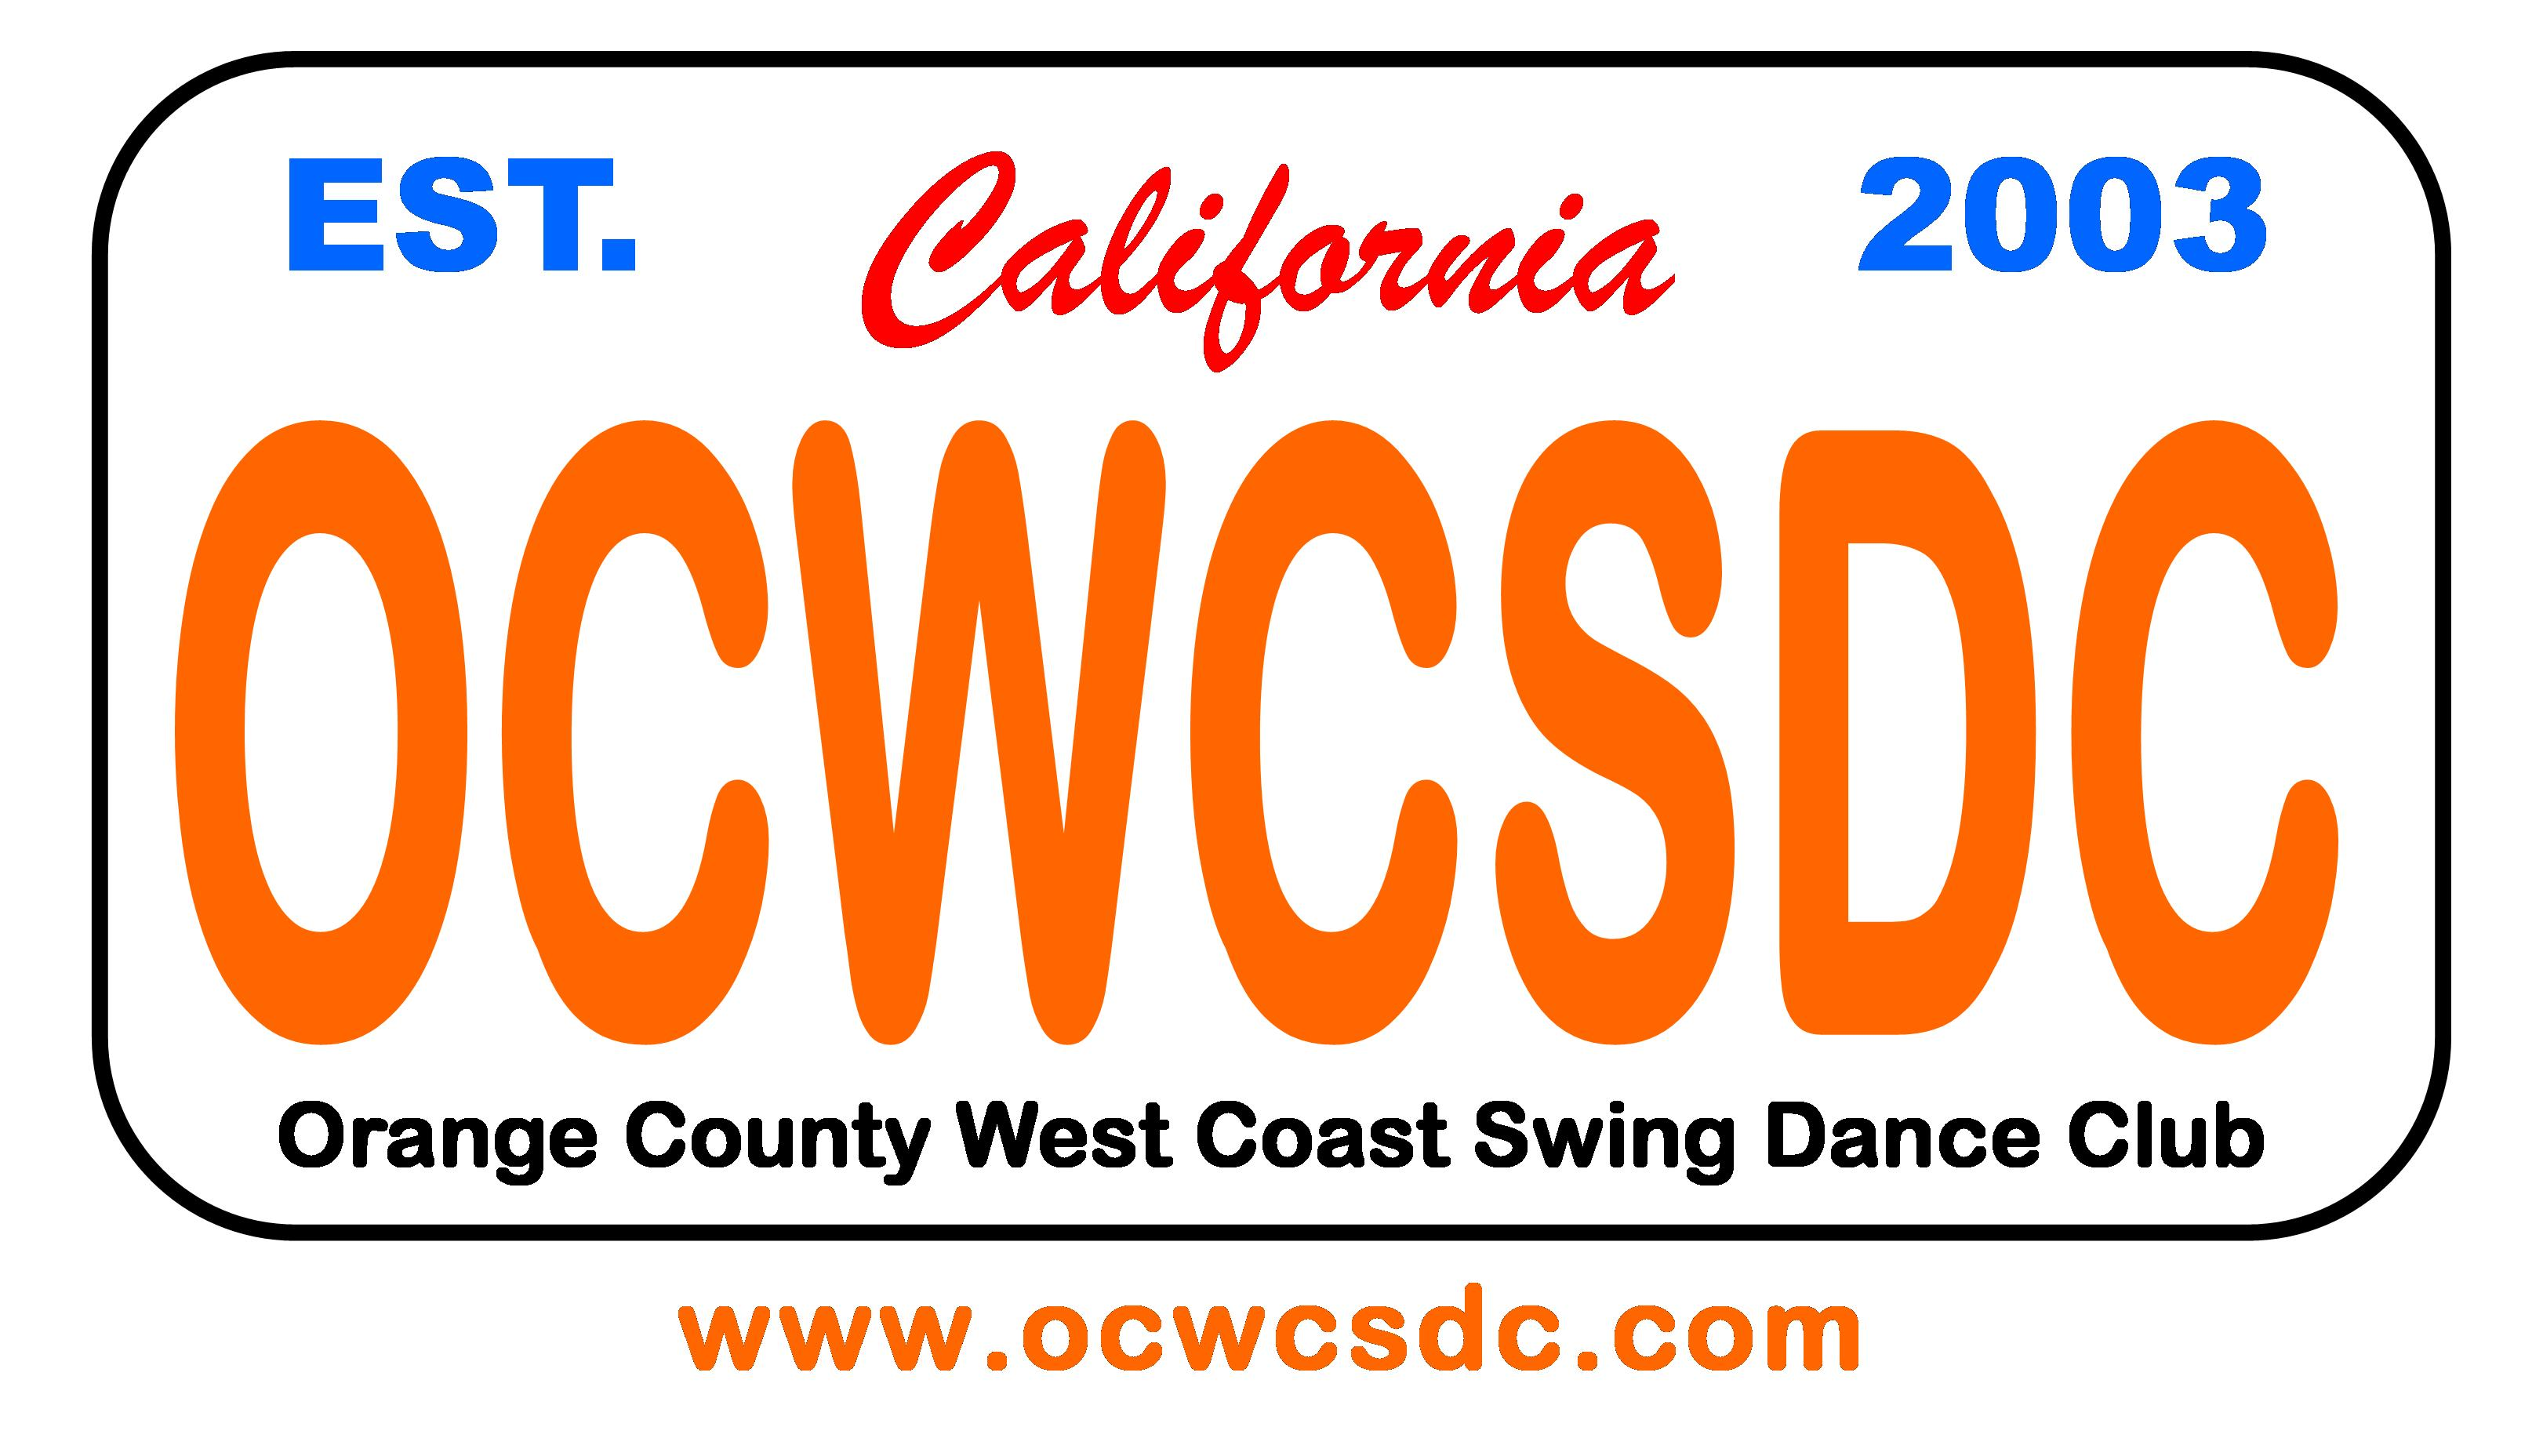 Orange County West Coast Swing Dance Club Logo